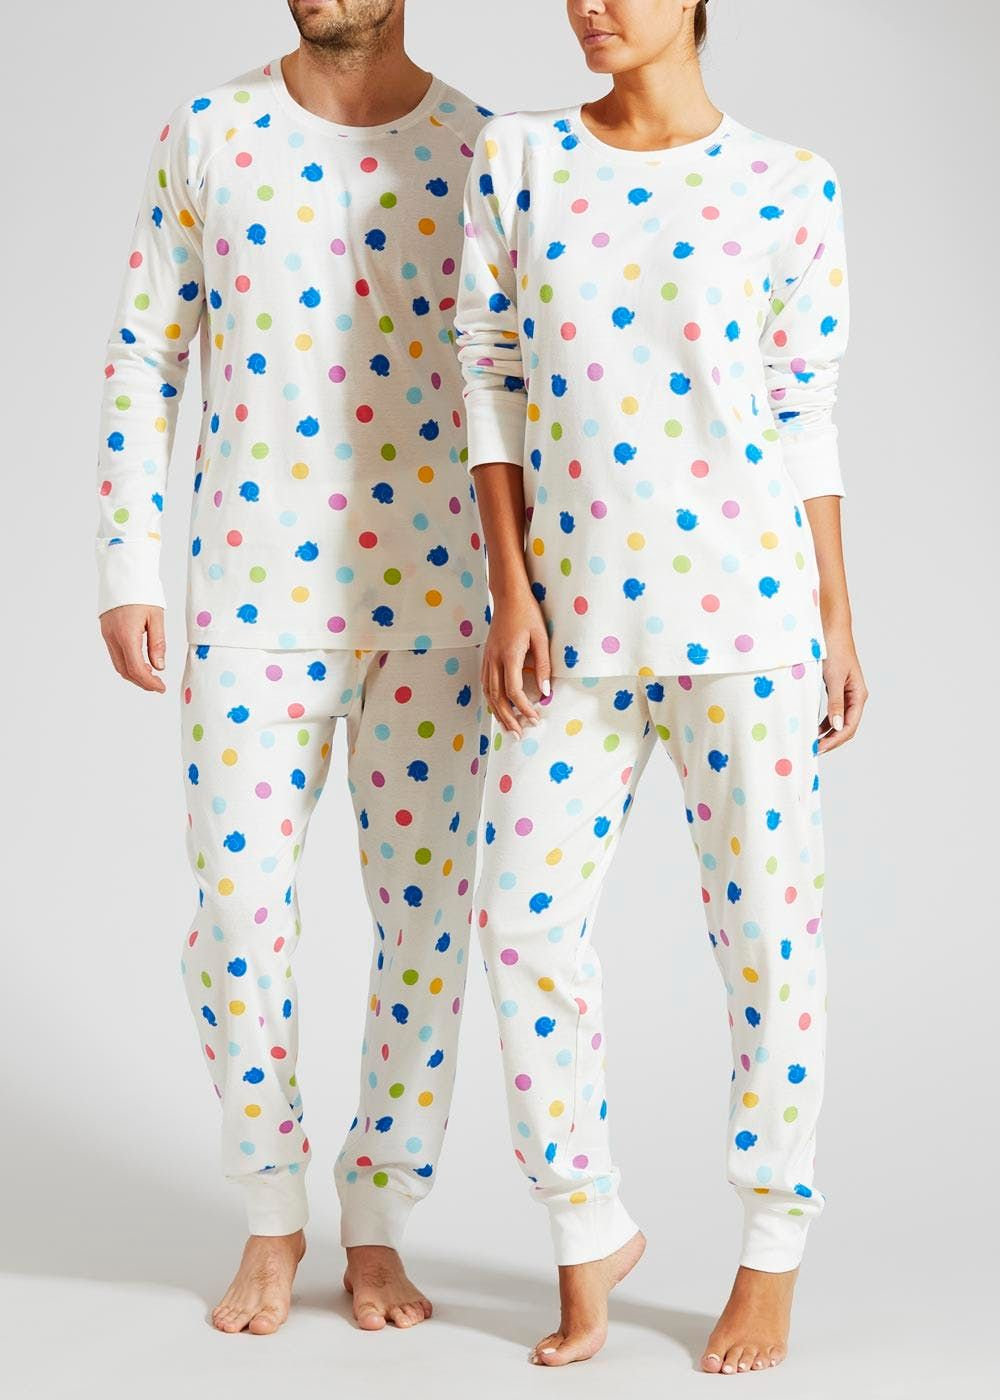 Unisex Adult GetSpotted Alder Hey Pyjamas Adult pajamas